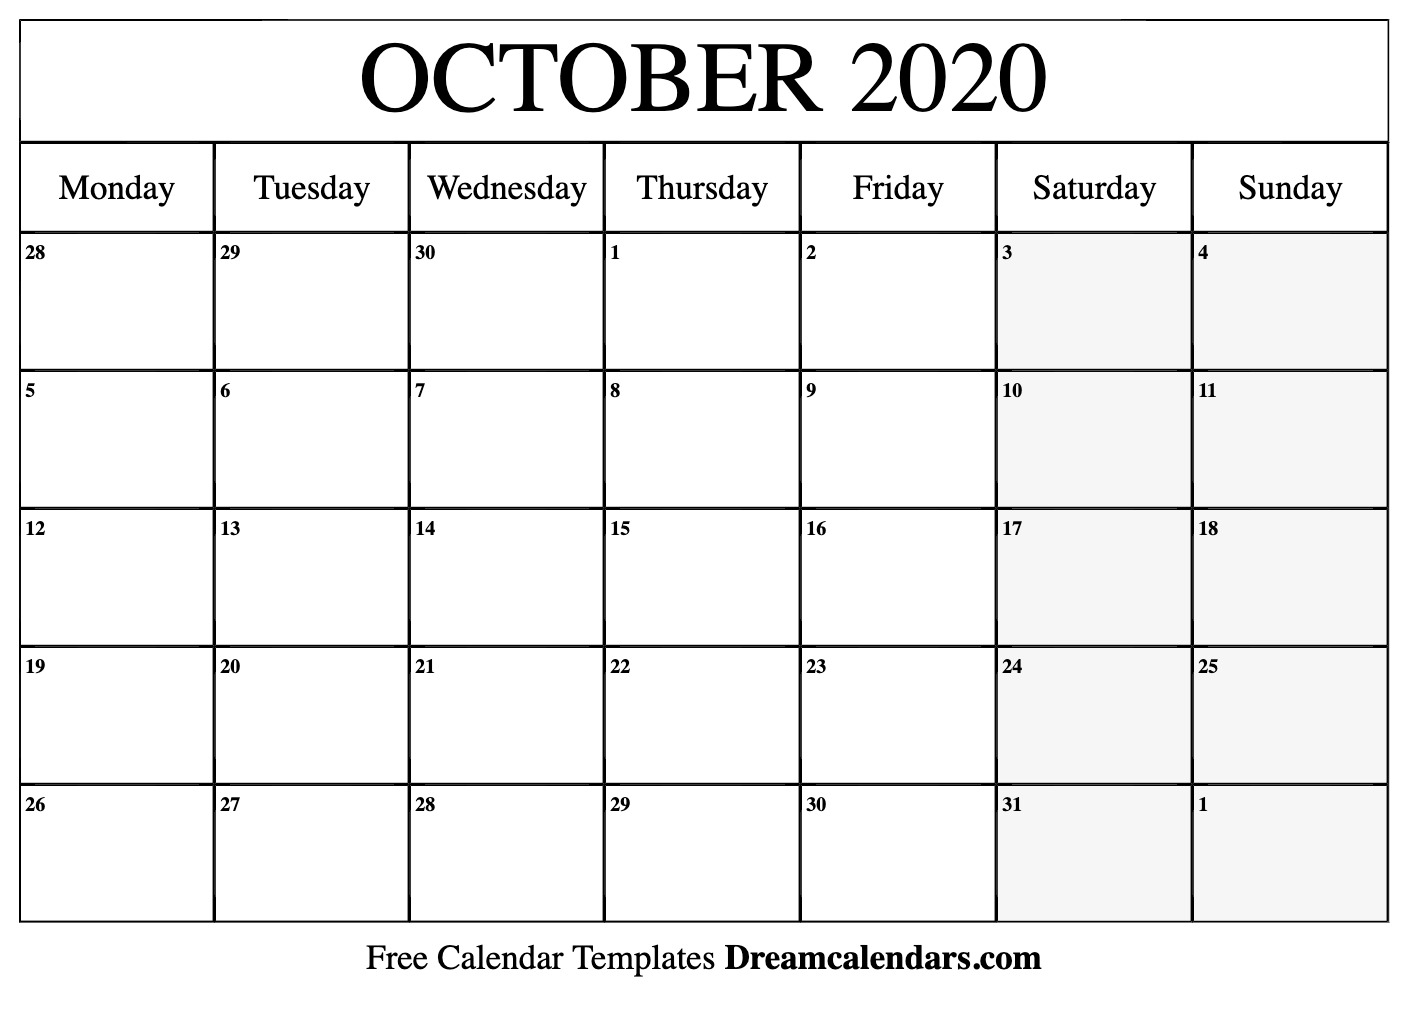 October 2020 Printable Calendar Dream Calendars 1406x1020